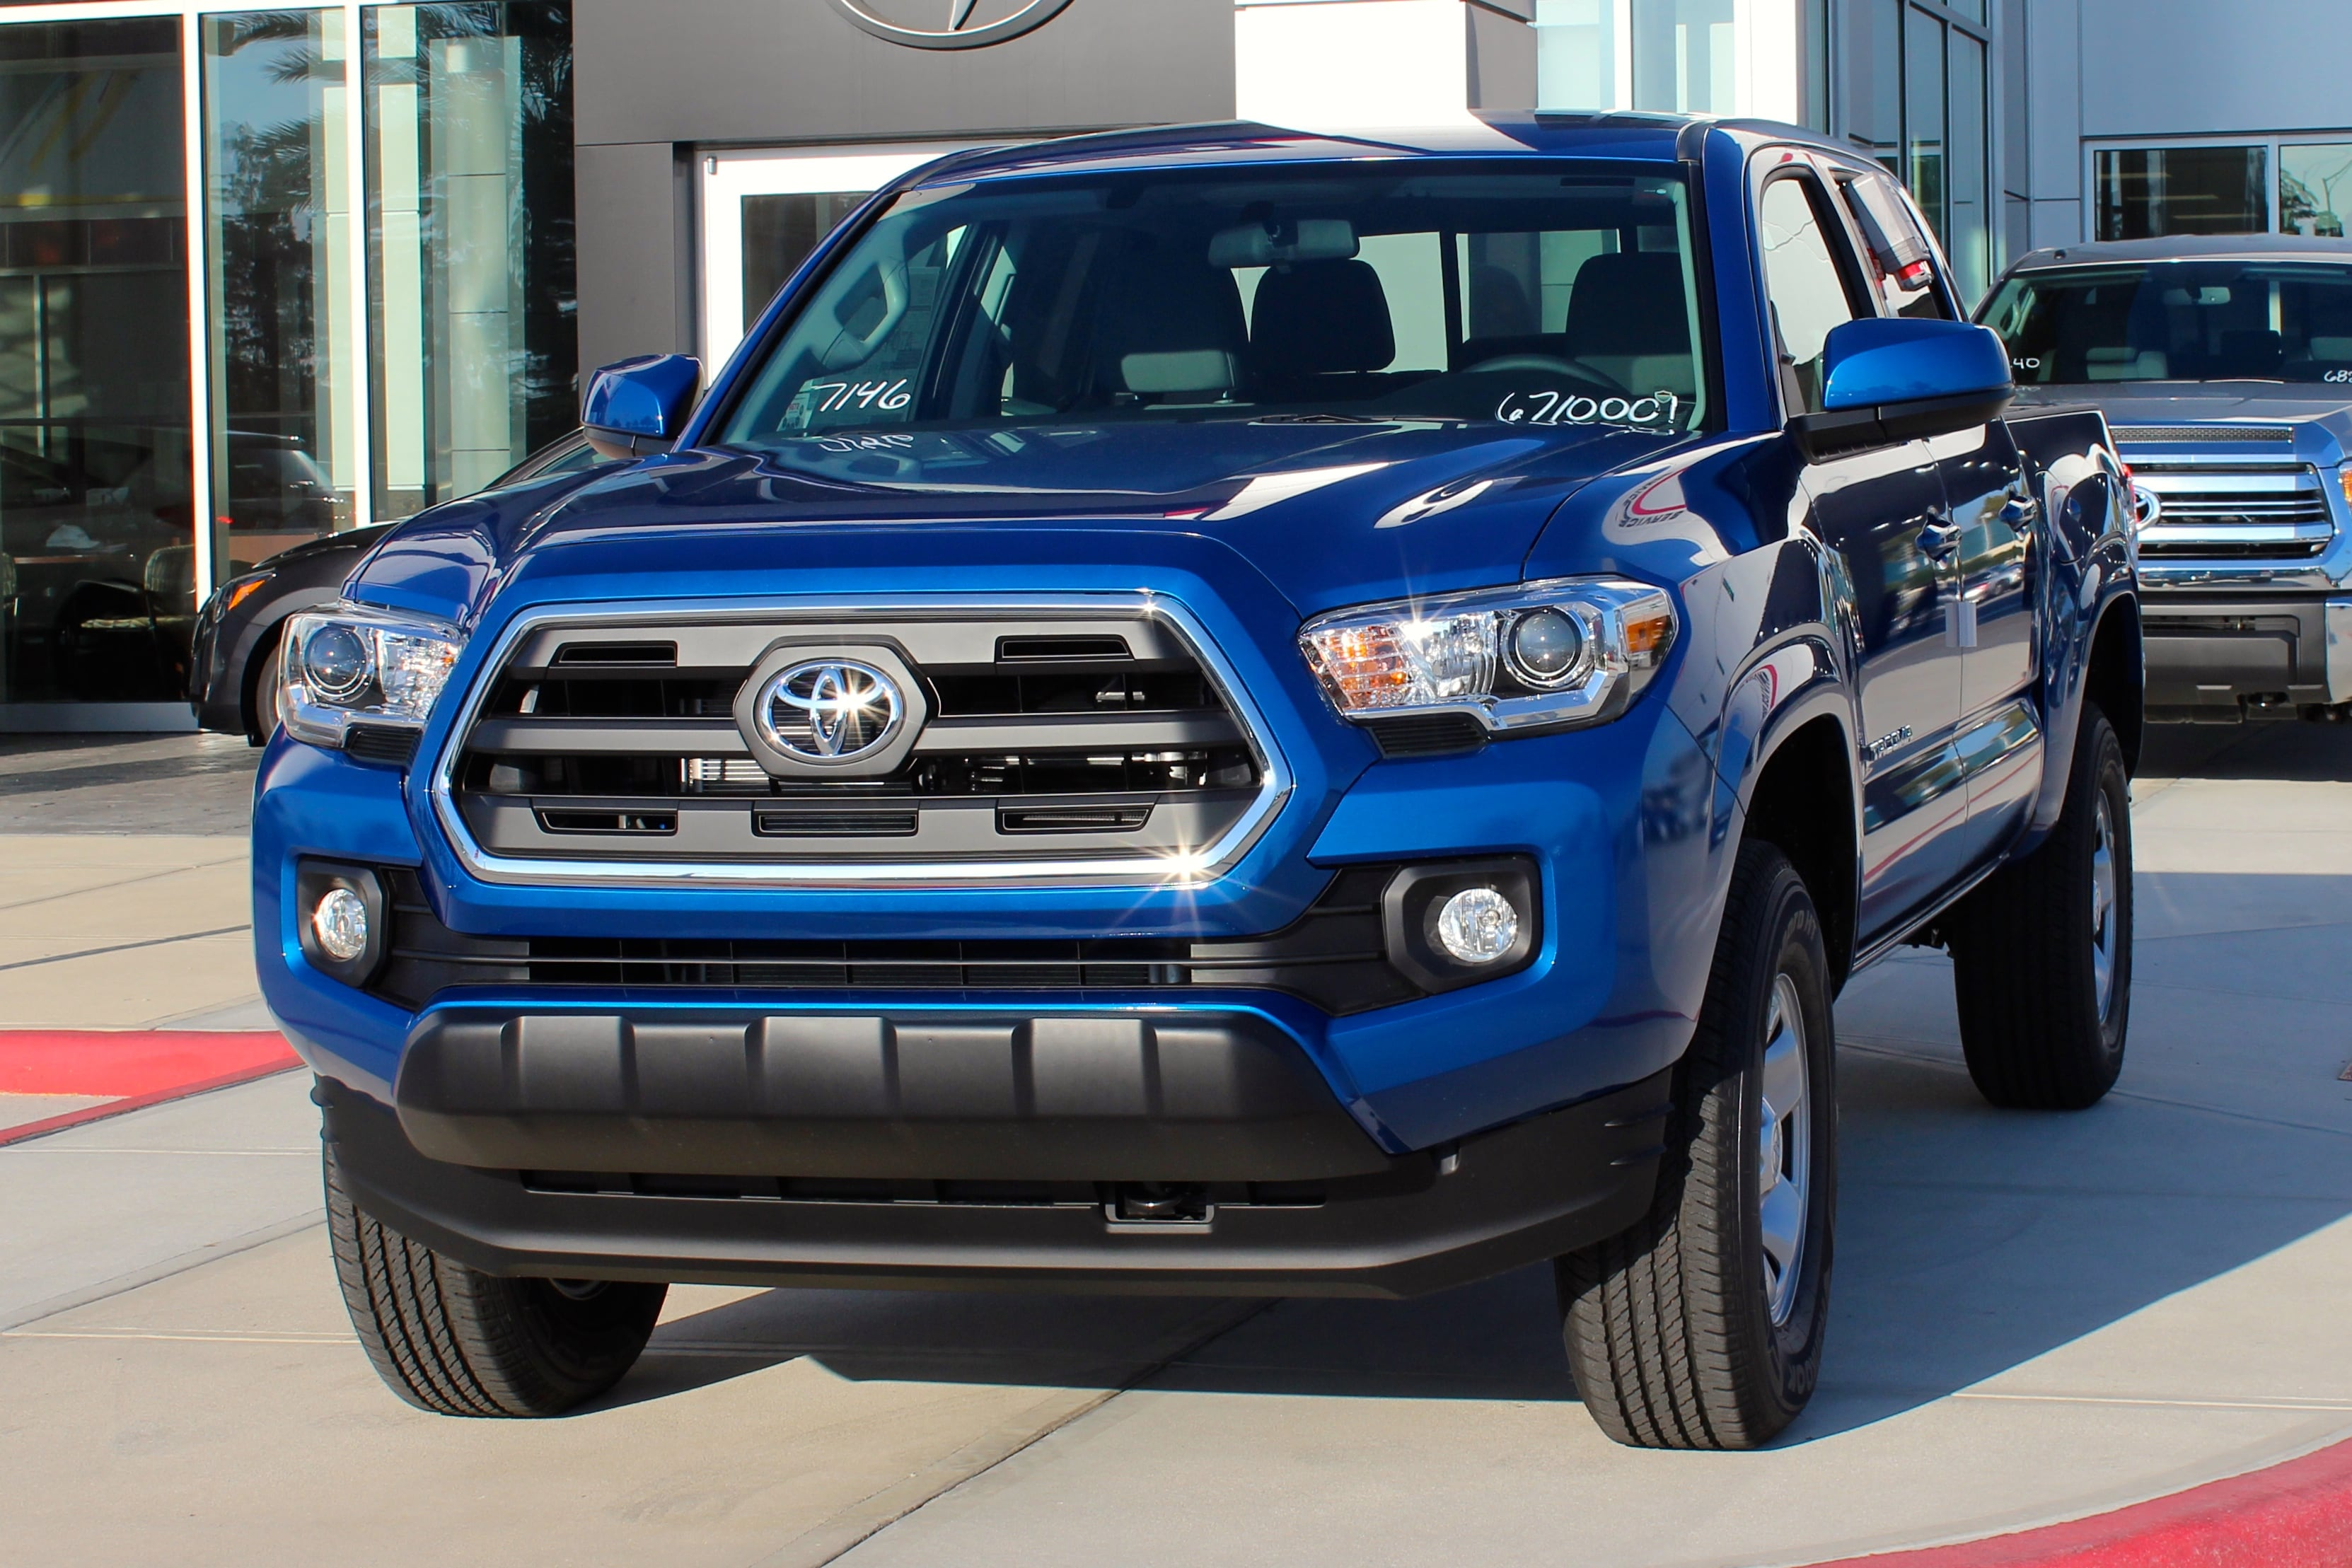 2016 toyota tacoma vs nissan frontier toyota truck shopping. Black Bedroom Furniture Sets. Home Design Ideas